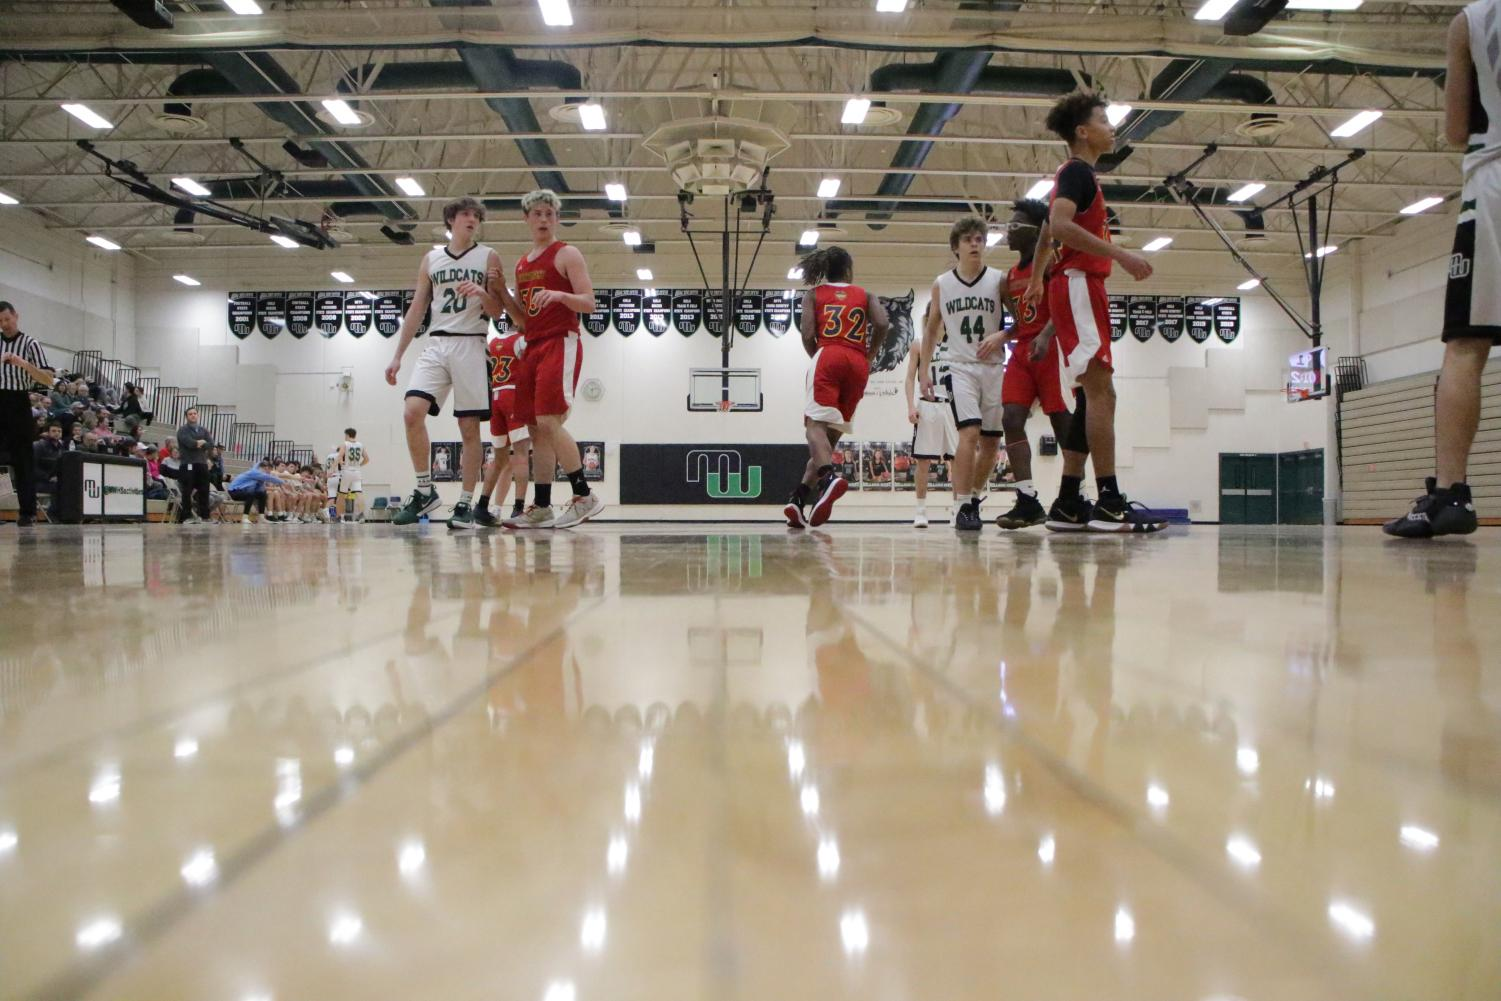 Millard West's Reserve Basketball team fell to Omaha Northwest on Monday. The final score was 55-61.